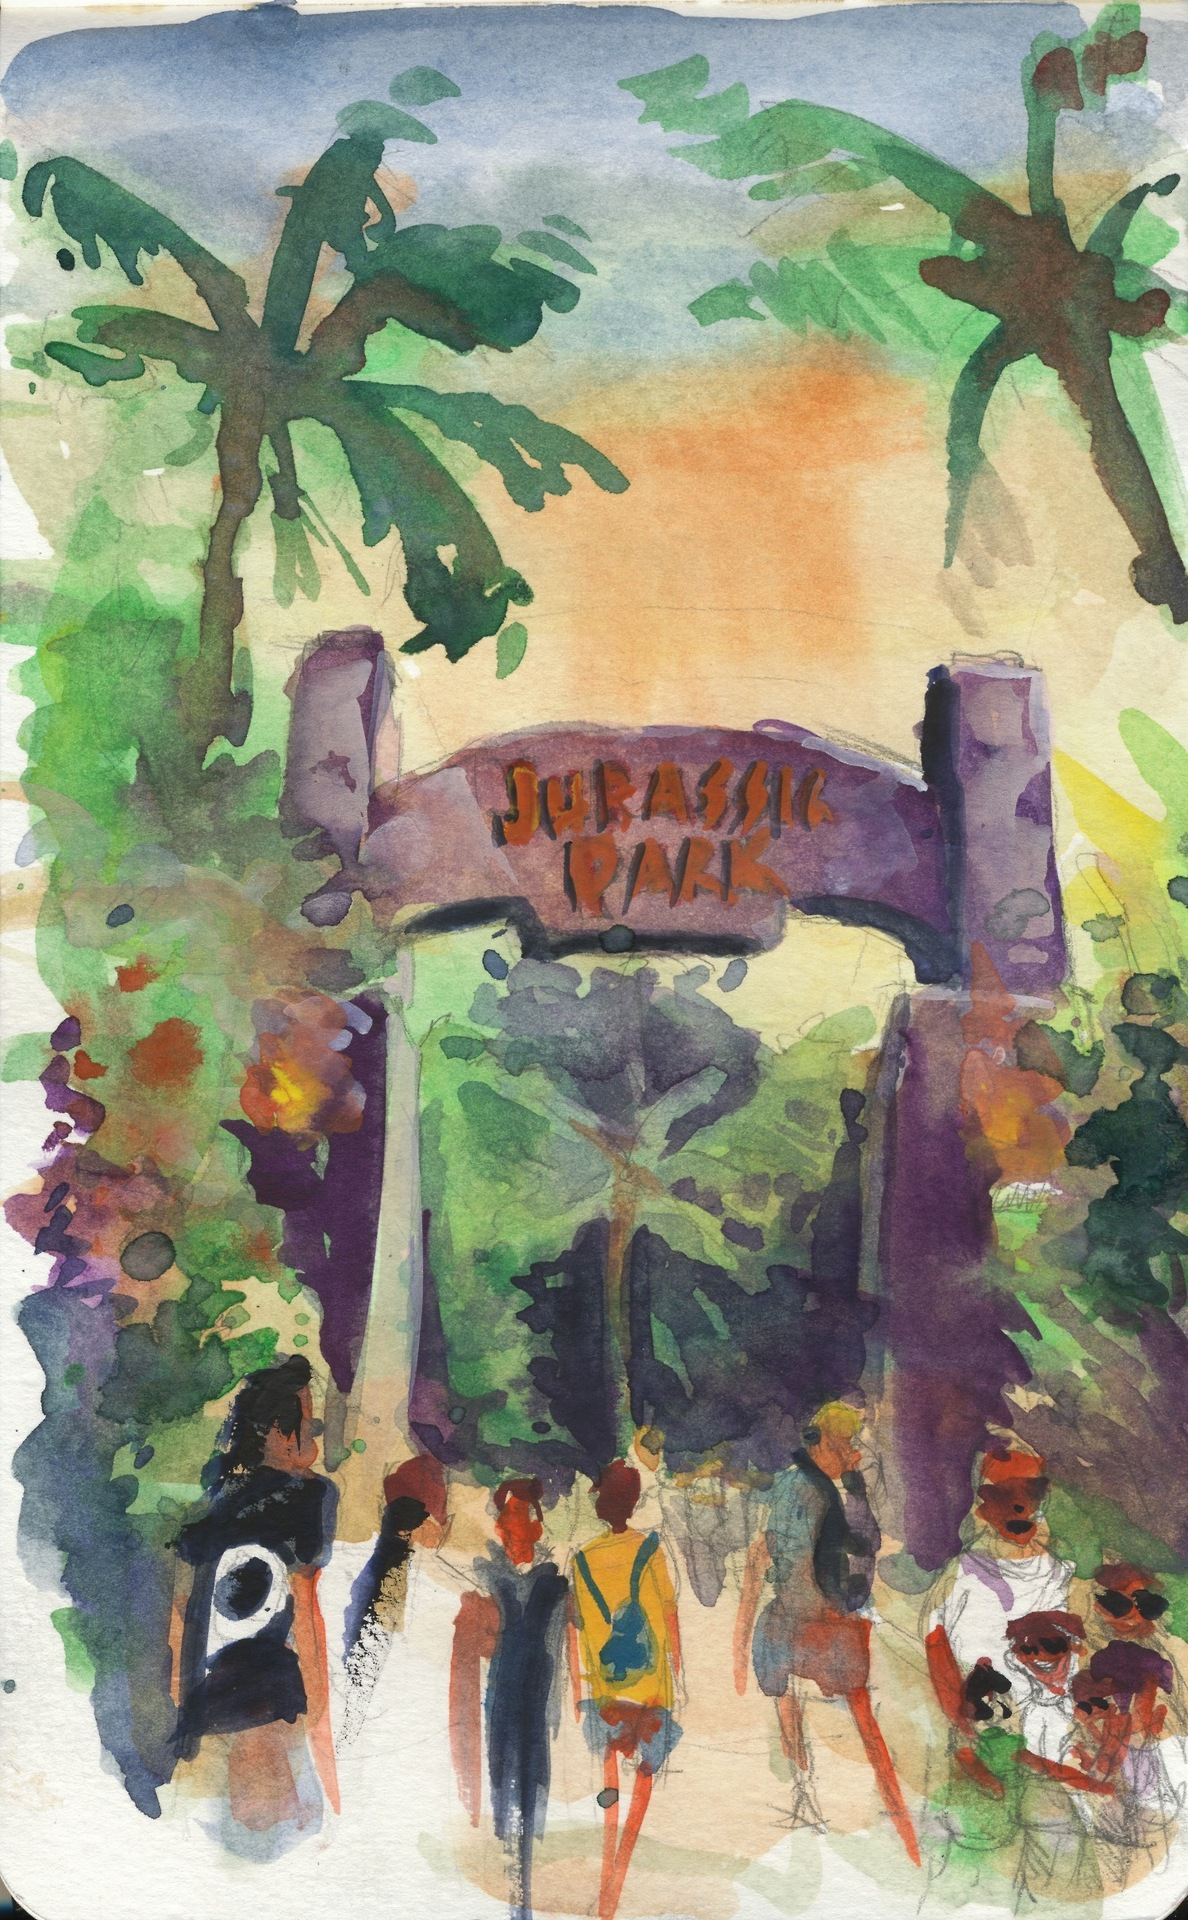 I skipped last sunday's update, but I happened to be very busy, anyways here is a more impressionistic attempt of a water color sketch. I still have a long way to go, though. Also, where was I? Not at a place that has King Kong, that's for sure, but the same company owns him too, so he could have.       ANSWER: Universal Studios at the theme park capitol of the world: Orlando. A very nice place, actually, though the sudden sinkholes frighten me.